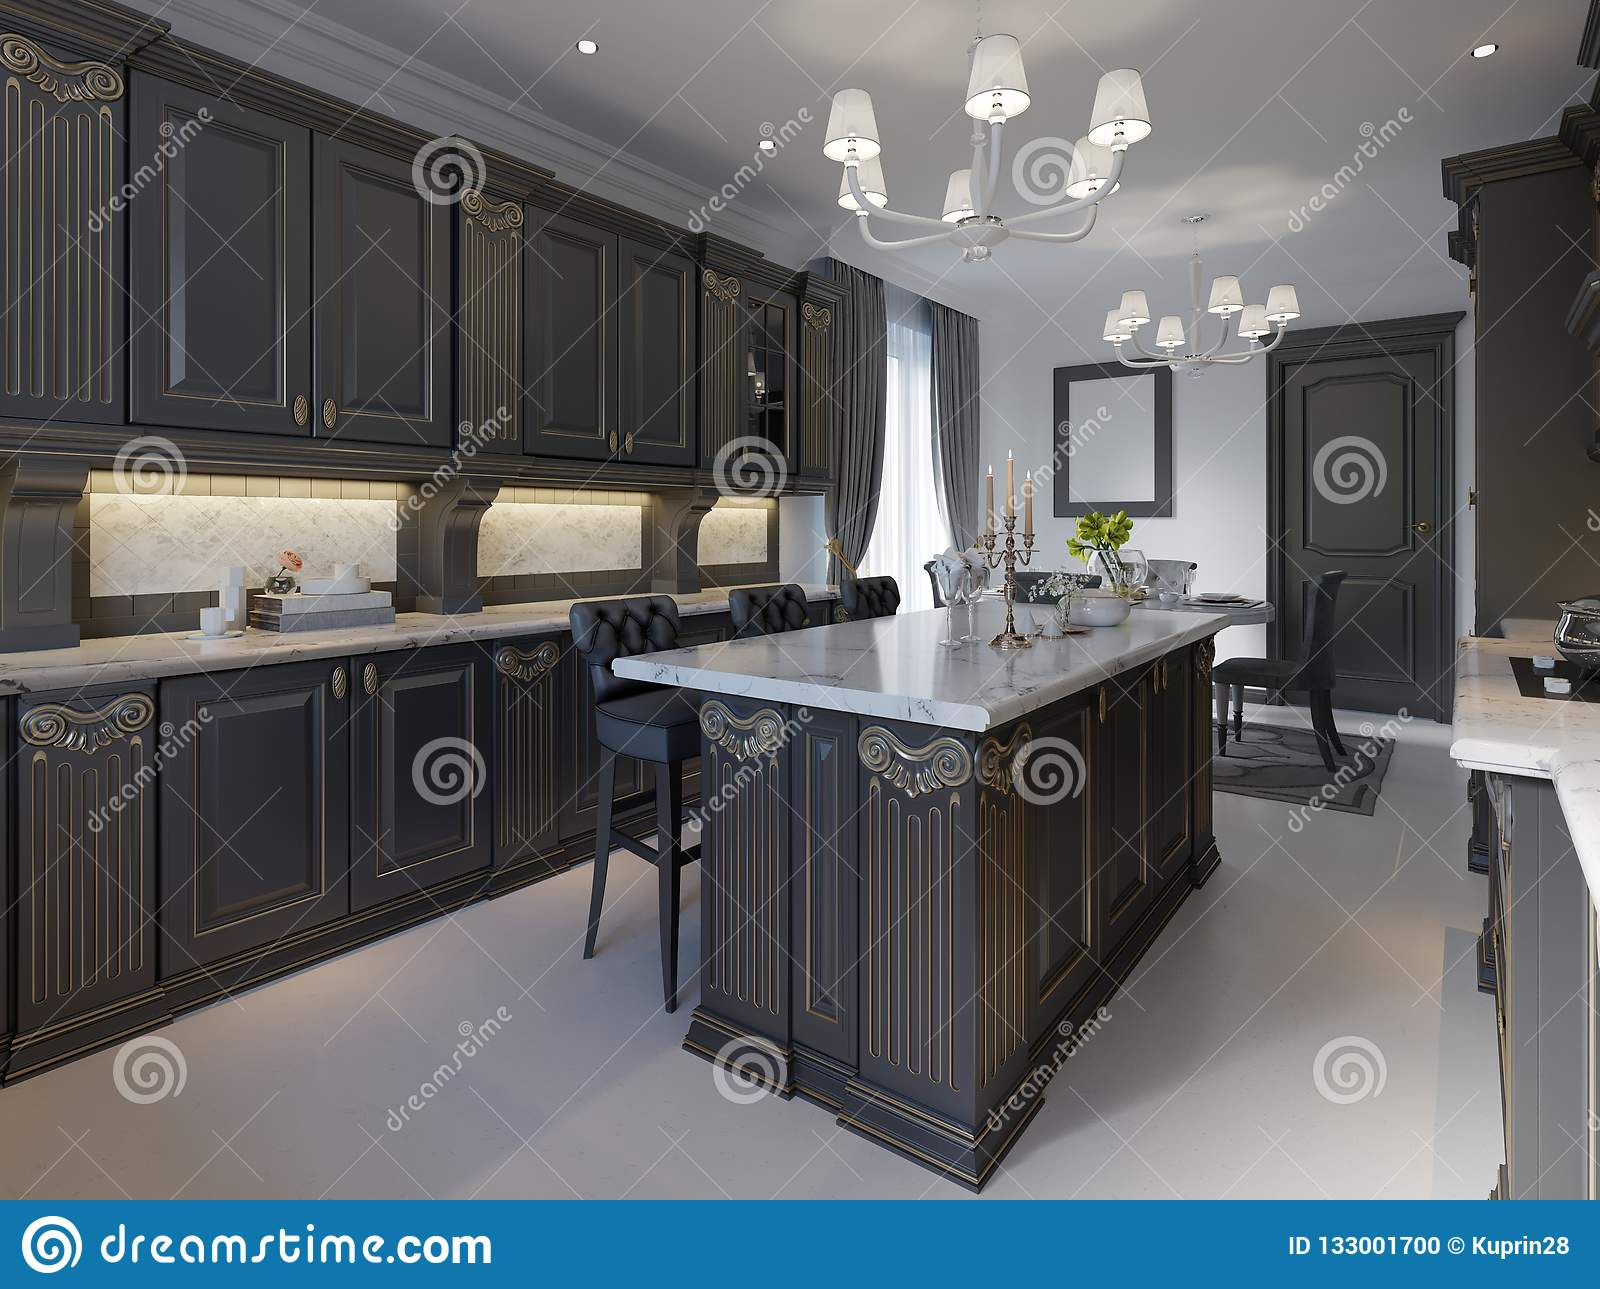 Modern Classic Kitchen Design With Black Cabinets And White Marble Worktop And Floor Stock Illustration Illustration Of Kitchen Appliance 133001700